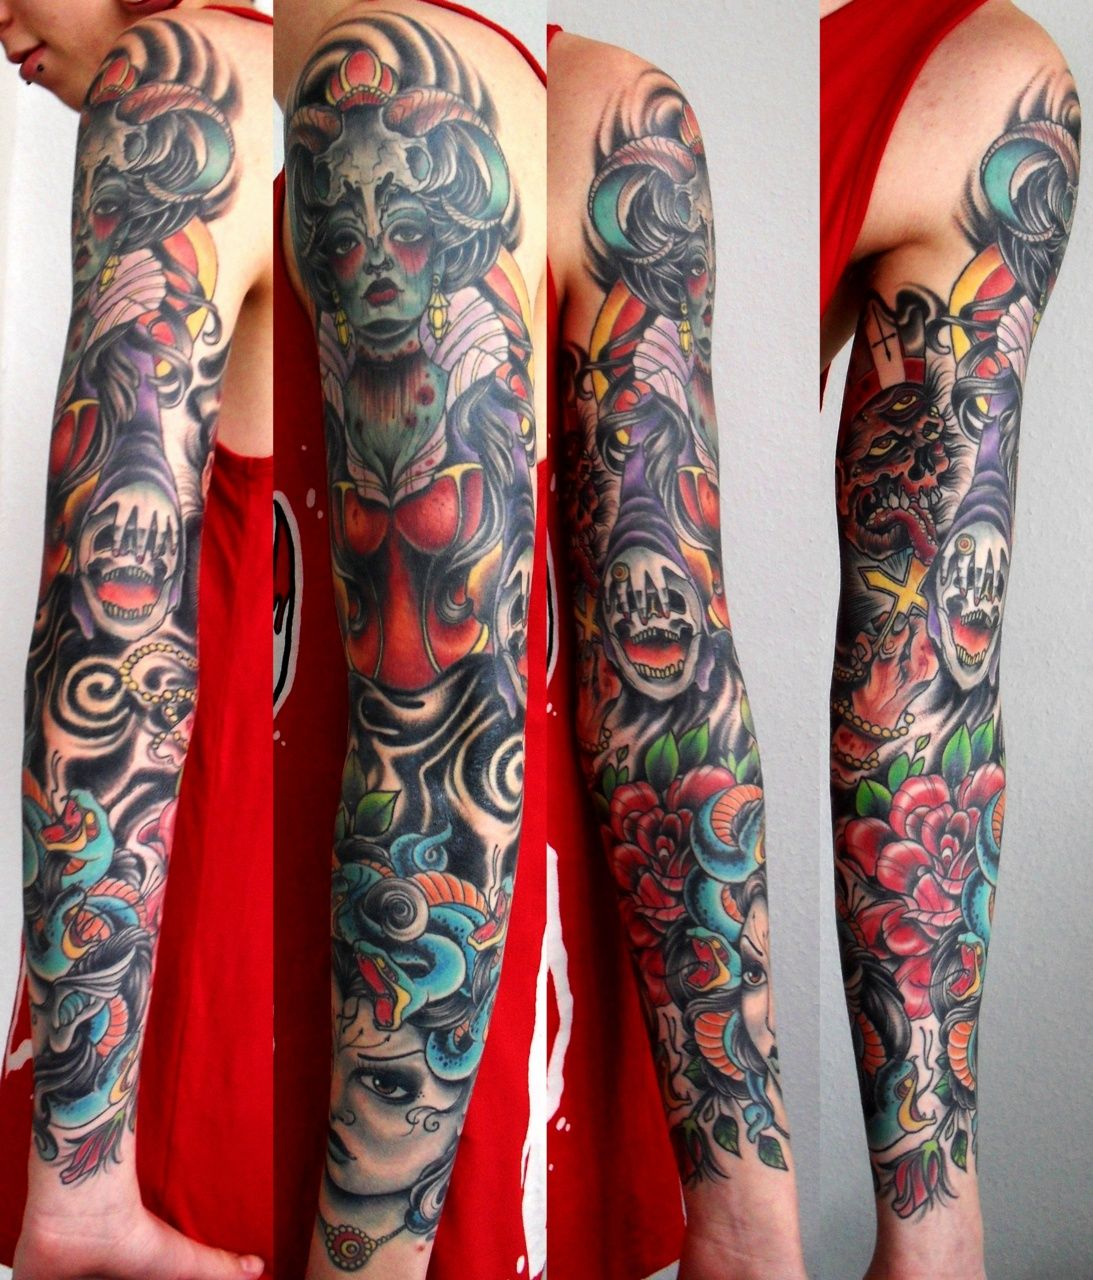 Tattoo shading background ideas the for Shading background tattoo